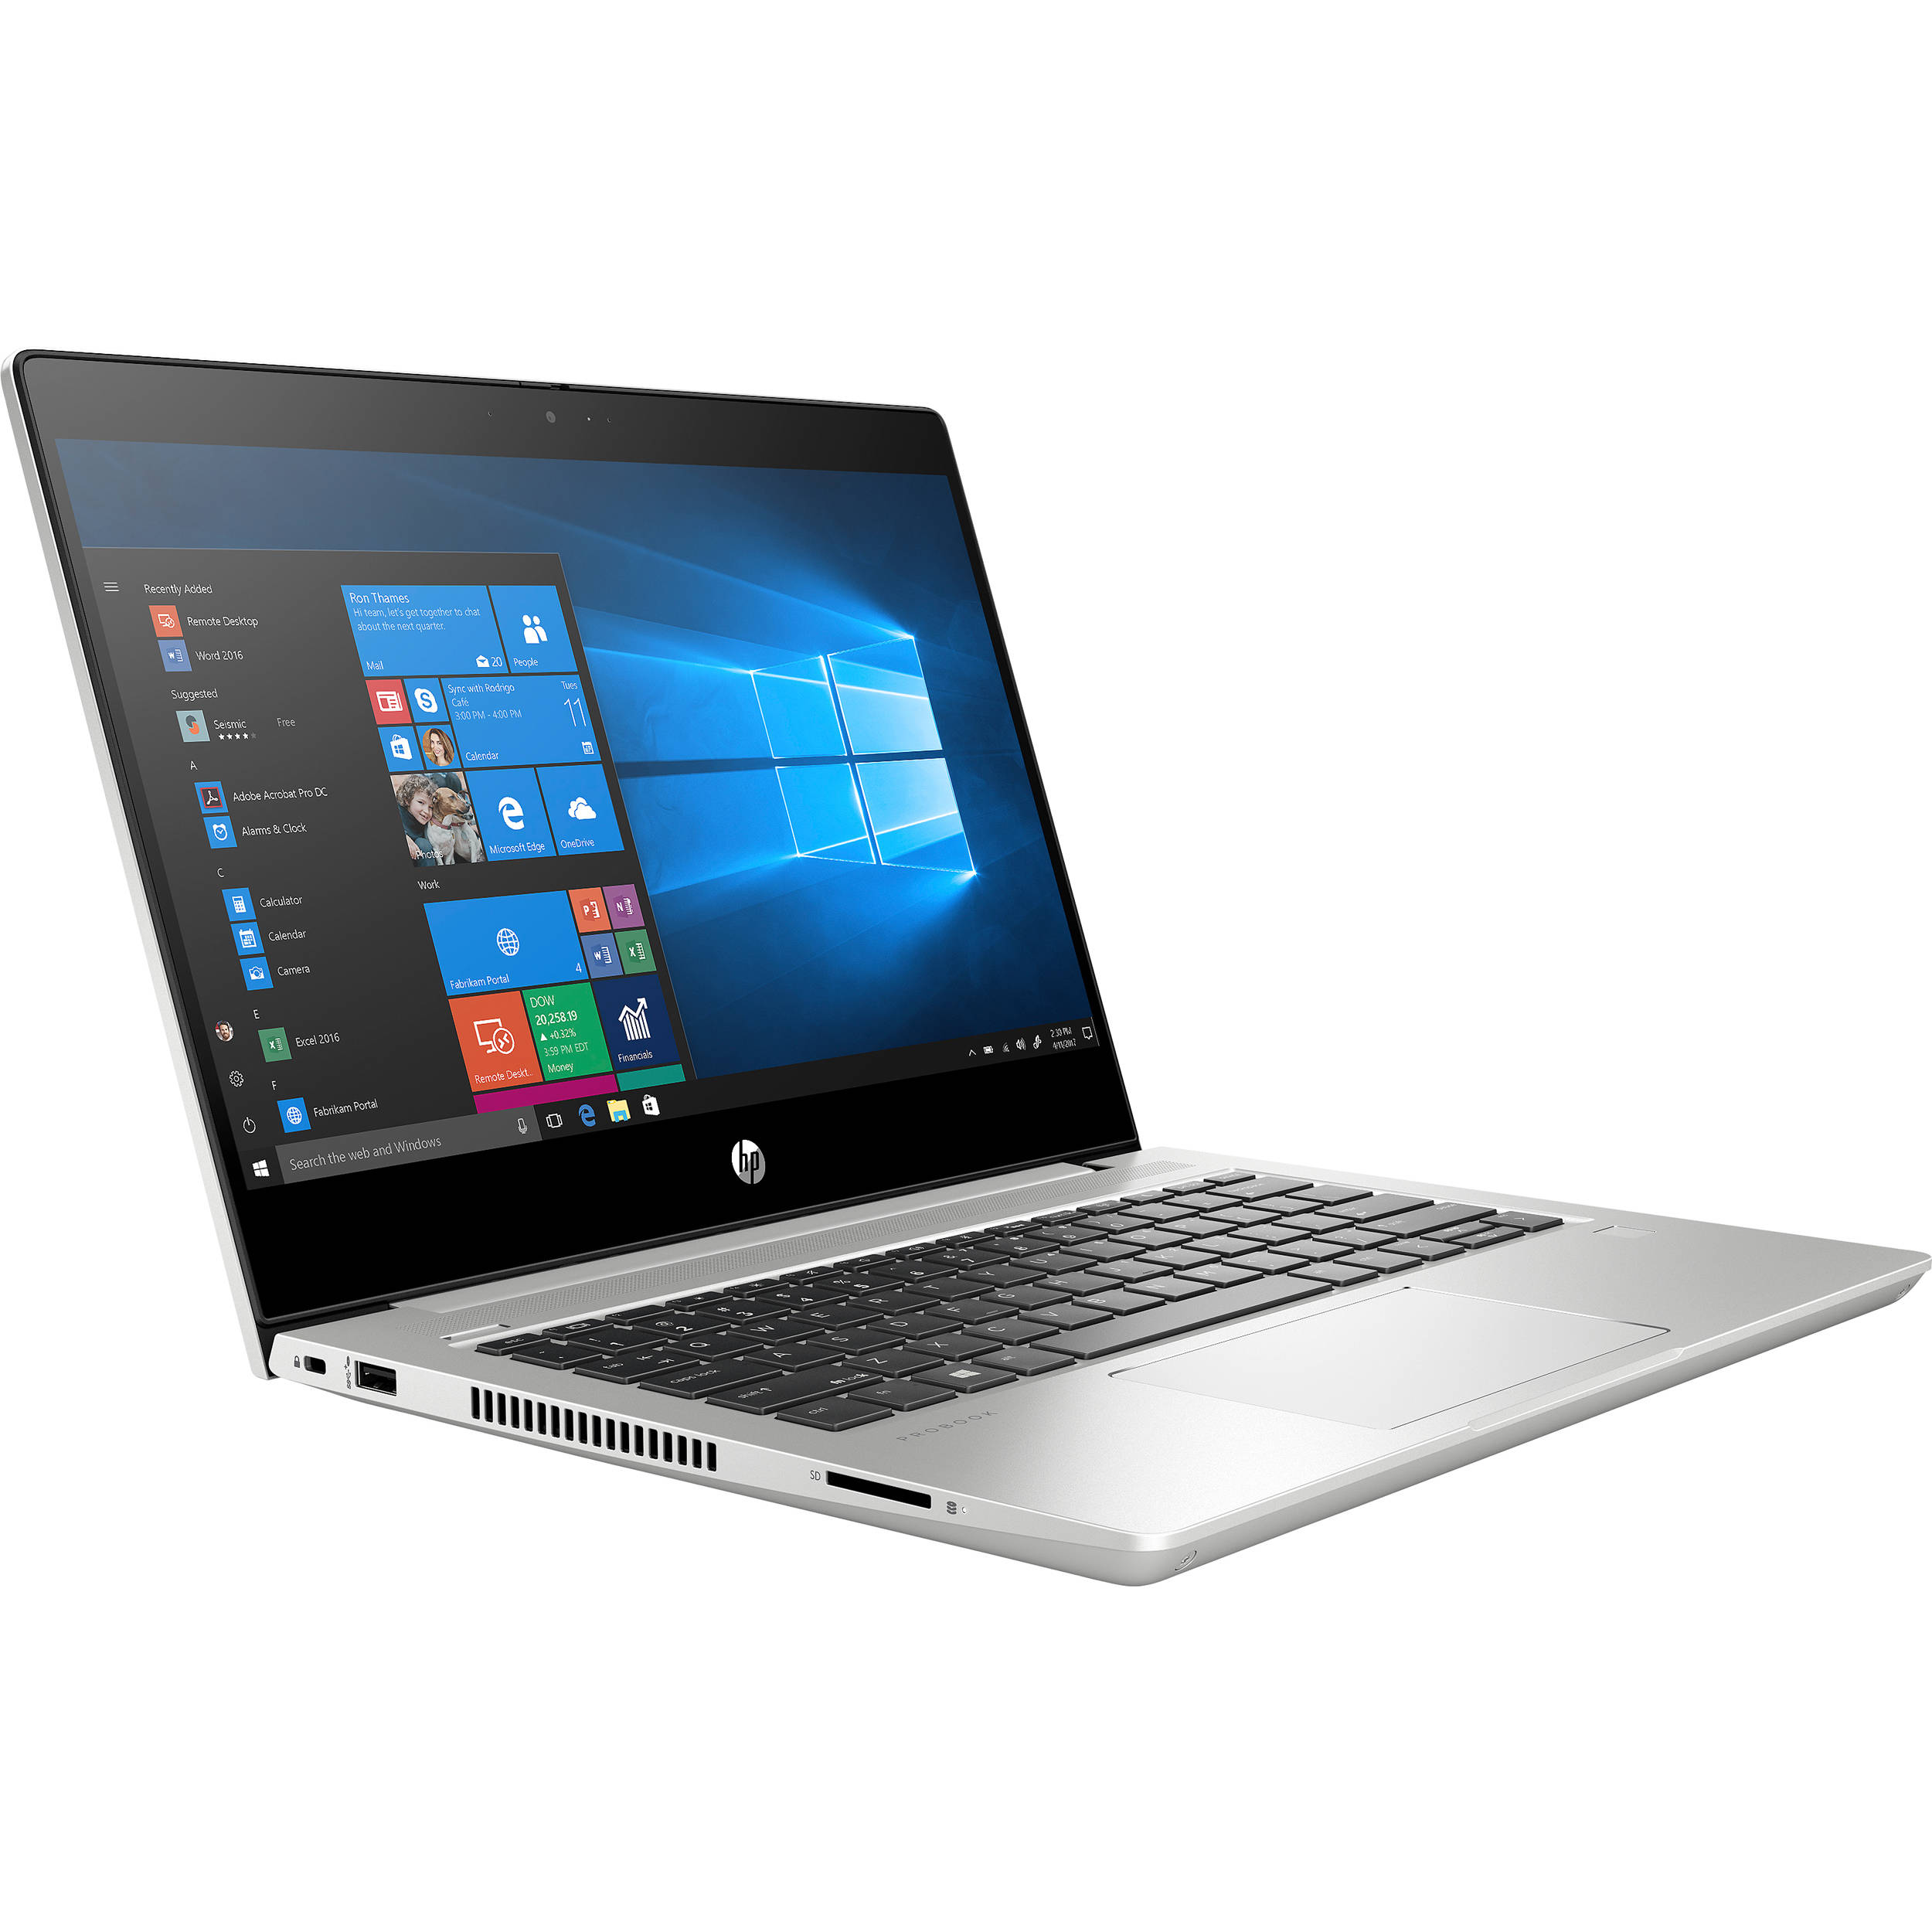 HP ProBook 430 G7 13.3' FHD IPS i5-10210U 8GB 256GB SSD WIN10 PRO UHDGraphics USB-C HDMI Backlit 3CELL 1.49kg W10P Notebook (9UQ35PA)